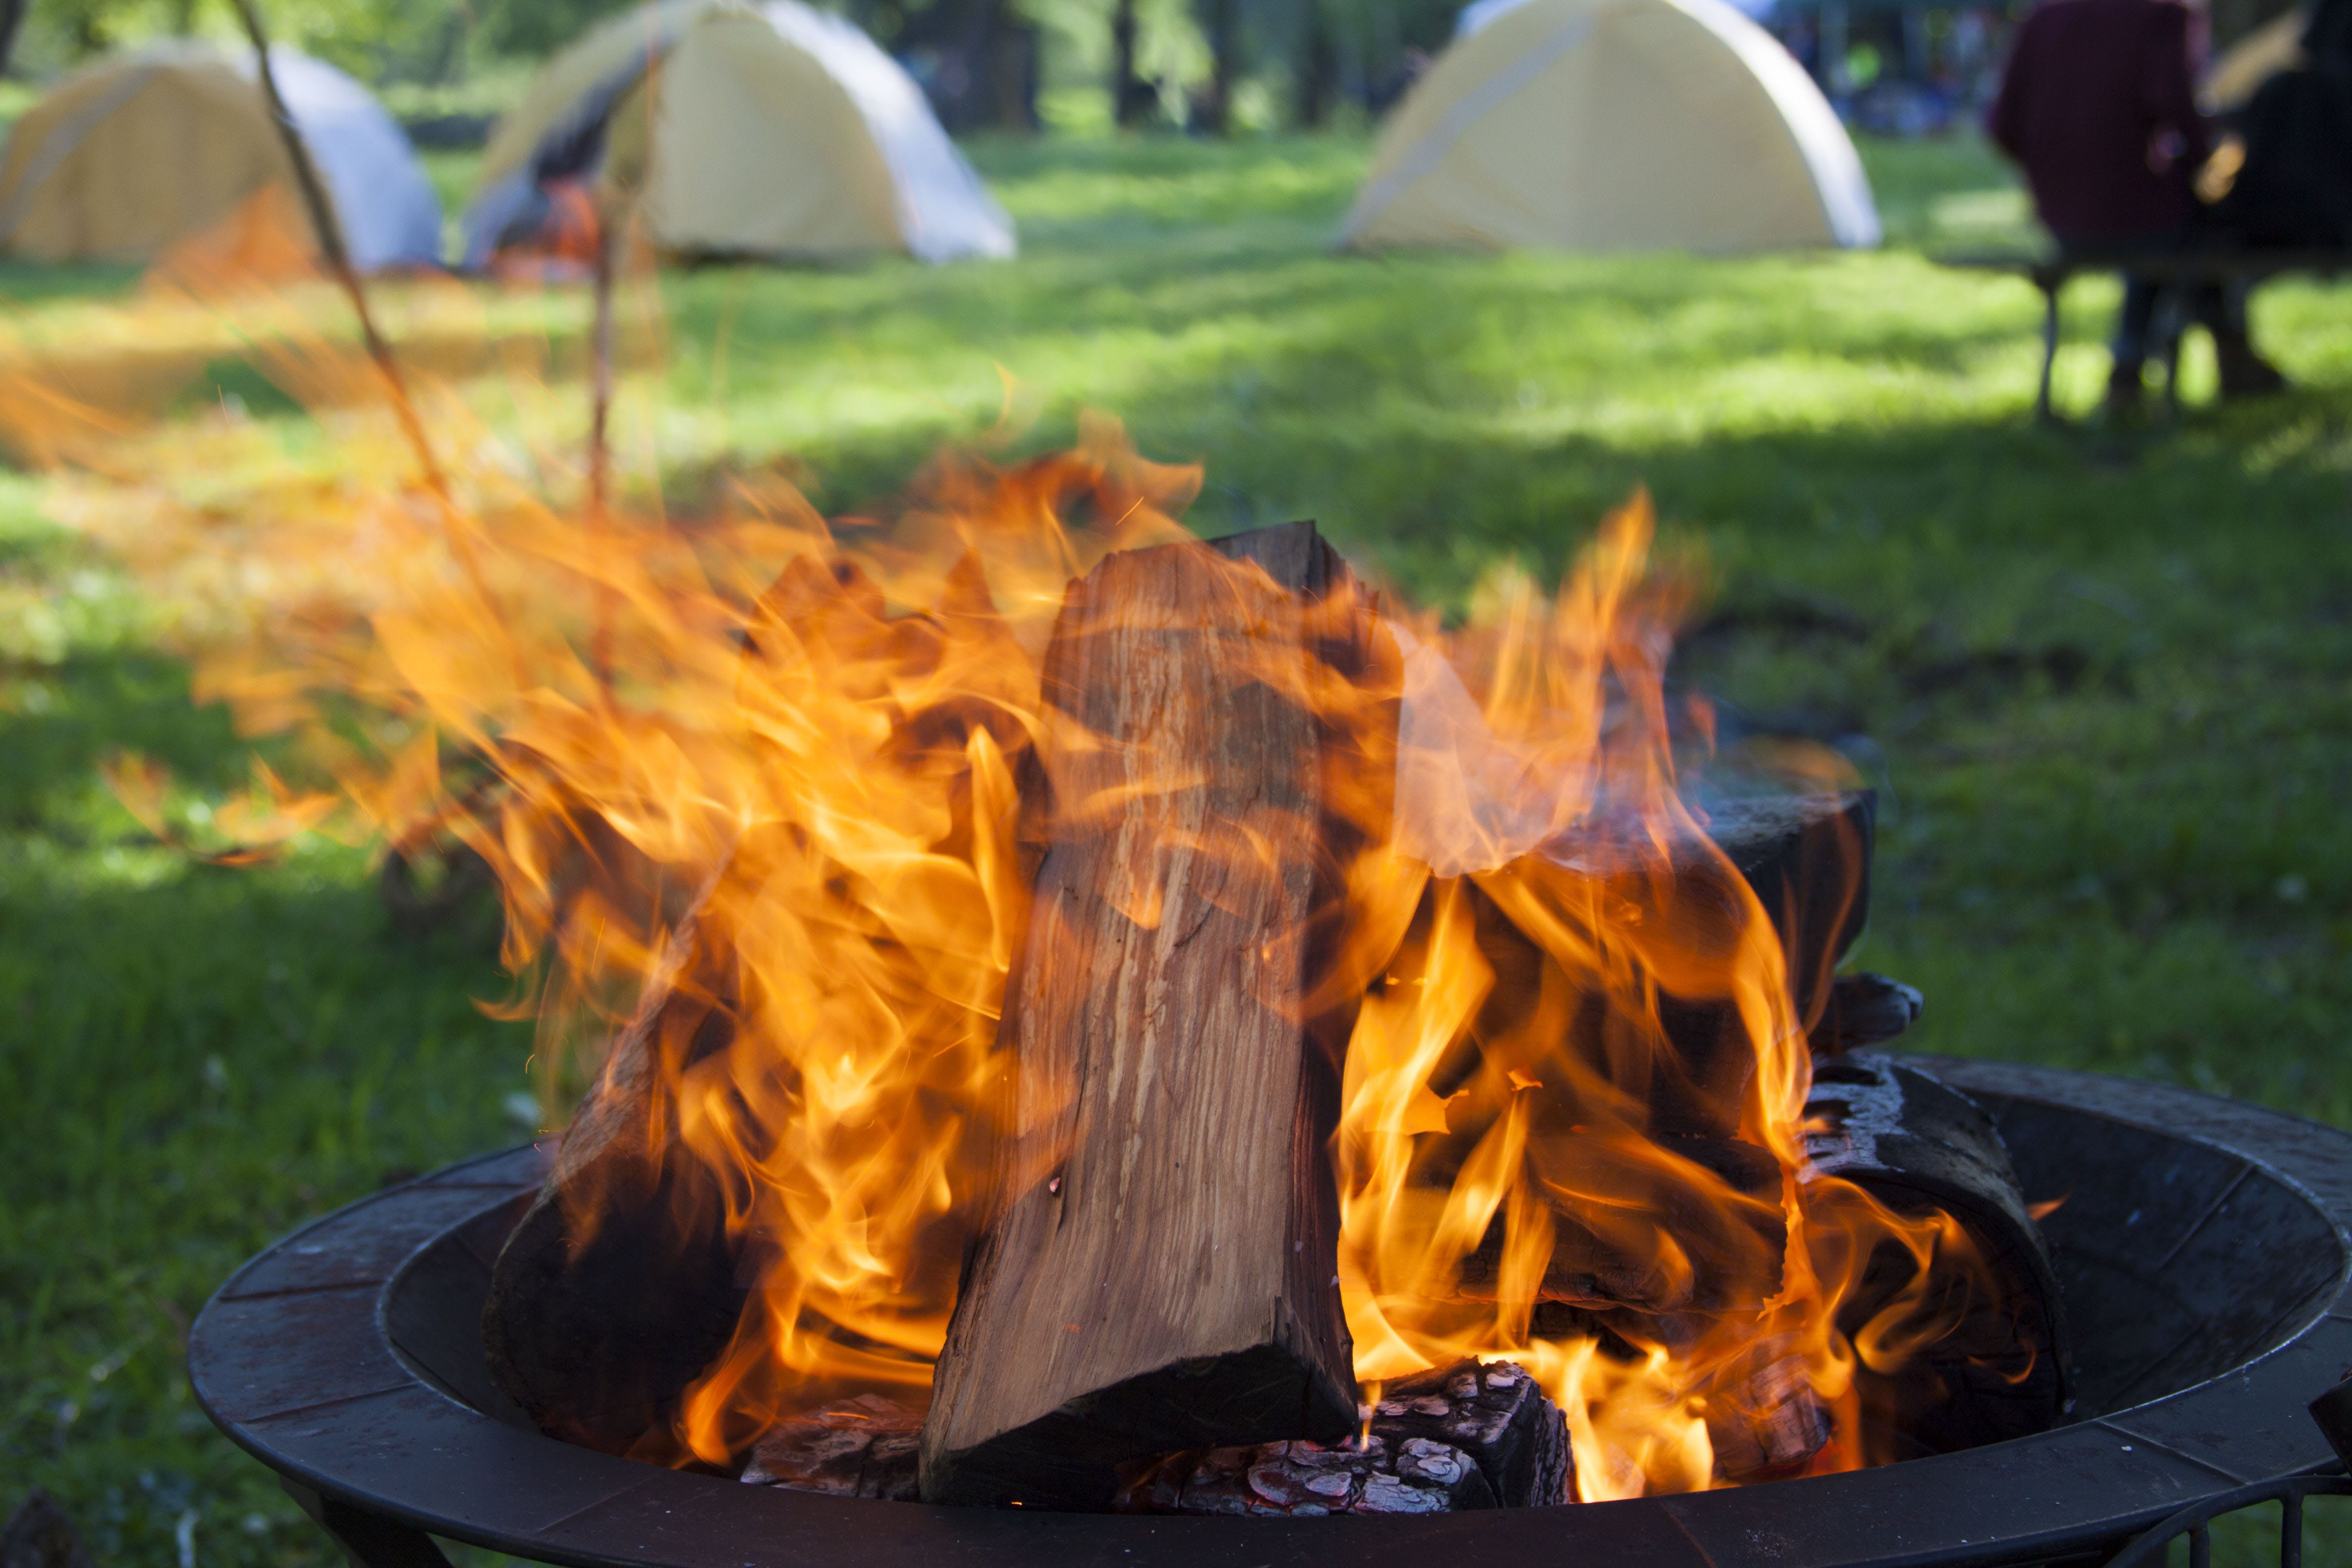 of campfire, fire, fire pit, firewood